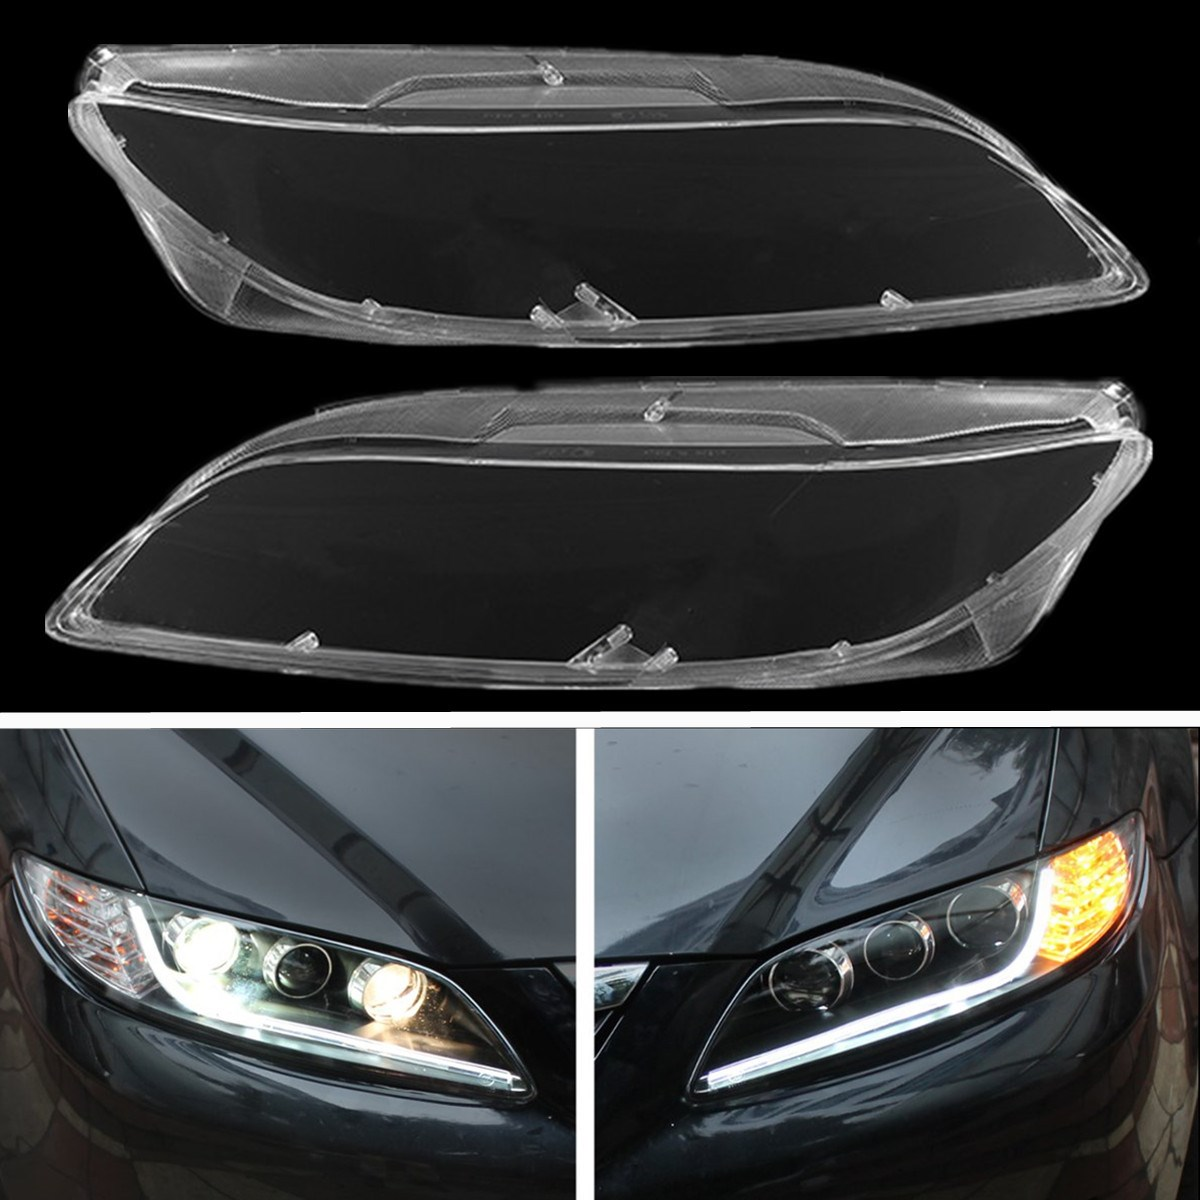 medium resolution of detail feedback questions about 1 pair clear car lens lamp cover headlight lampshade bright for mazda 6 2003 2008 on aliexpress com alibaba group